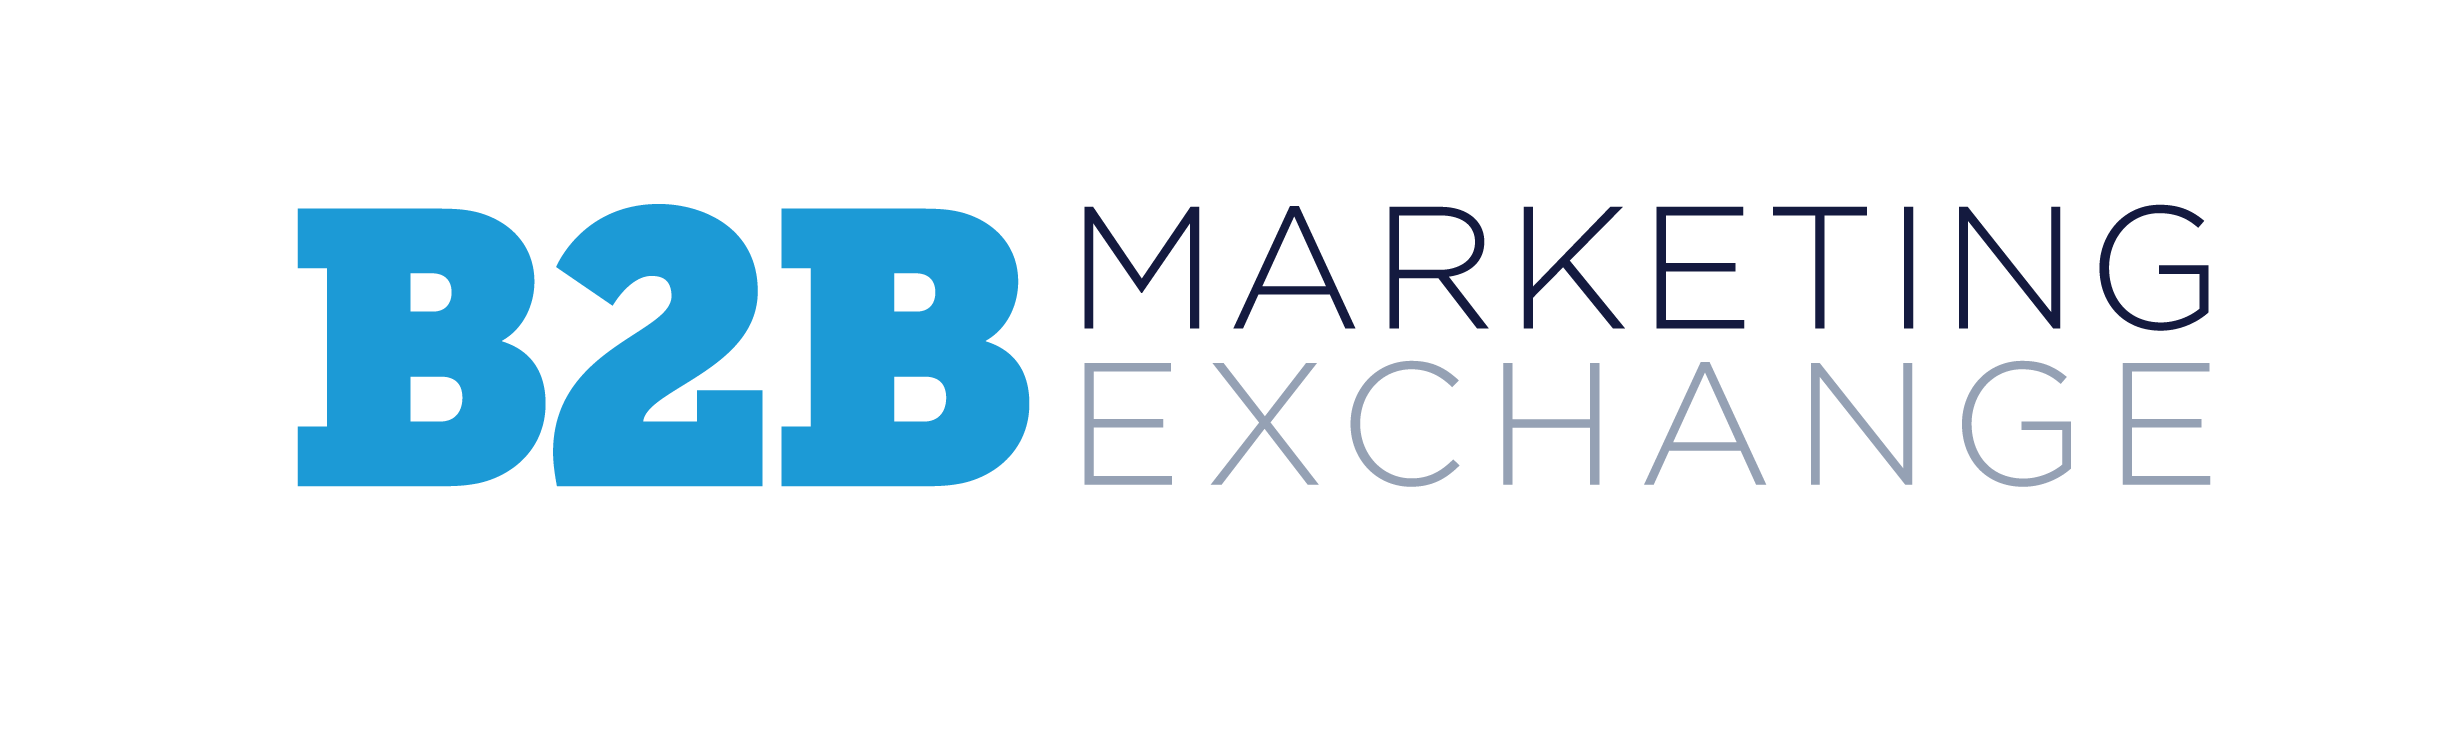 Channel Marketing Veterans to Share Insights at B2BMX Conference